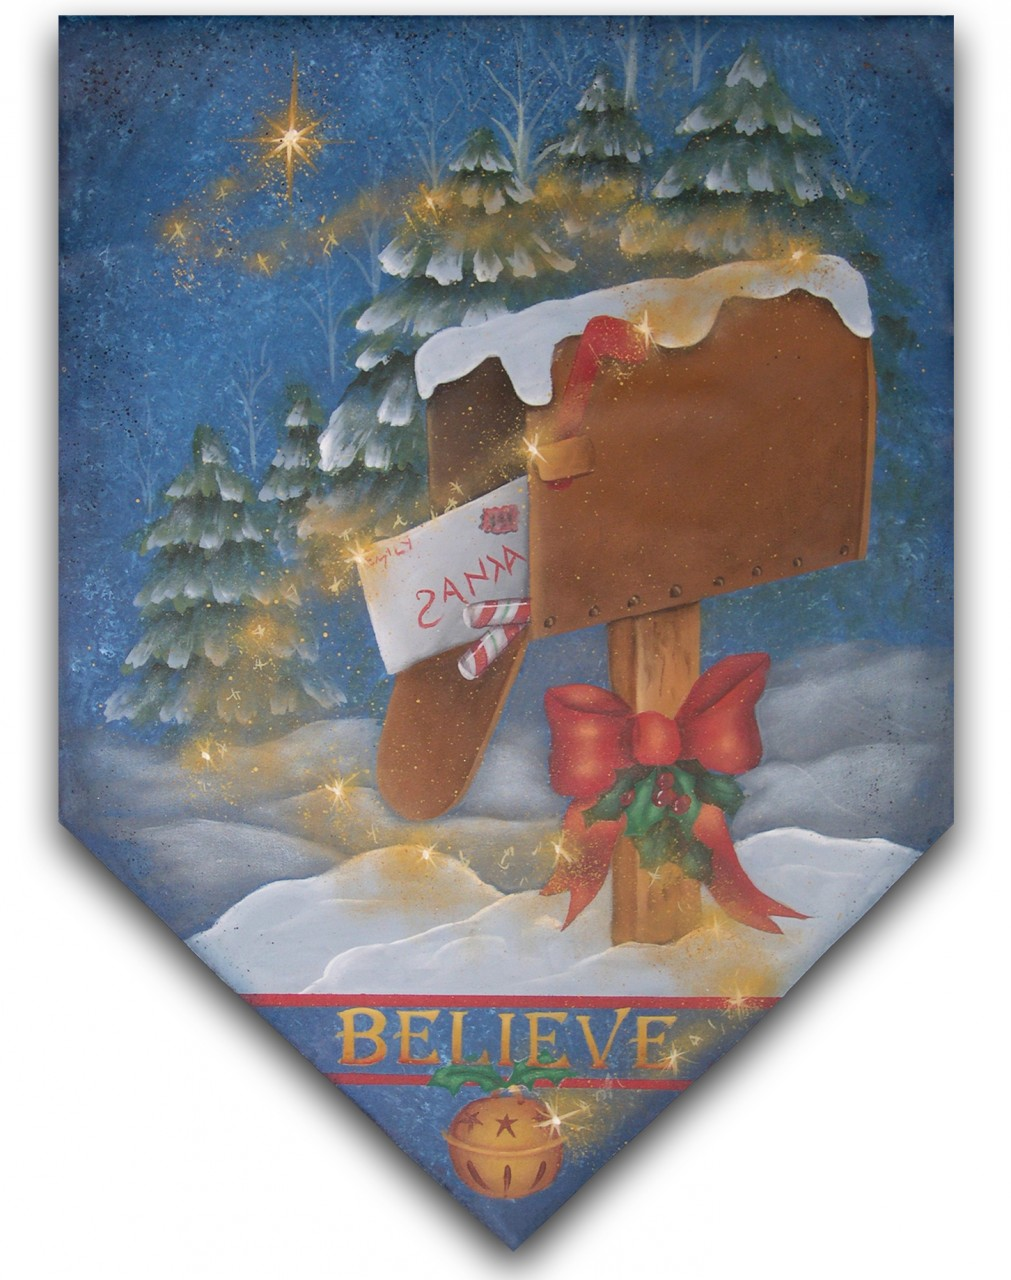 Believe packet - Patricia Rawlinson